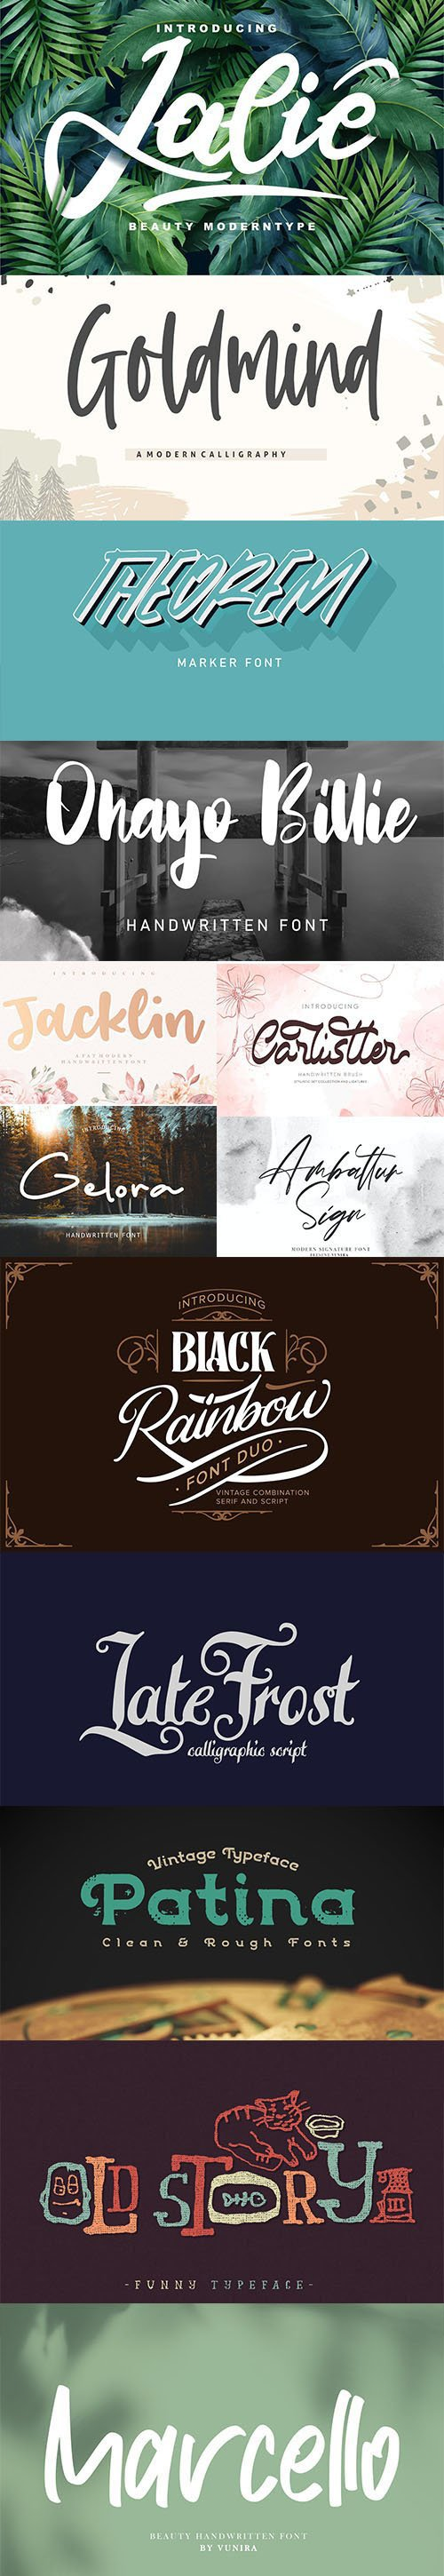 13 Creative Fresh Fonts Collection